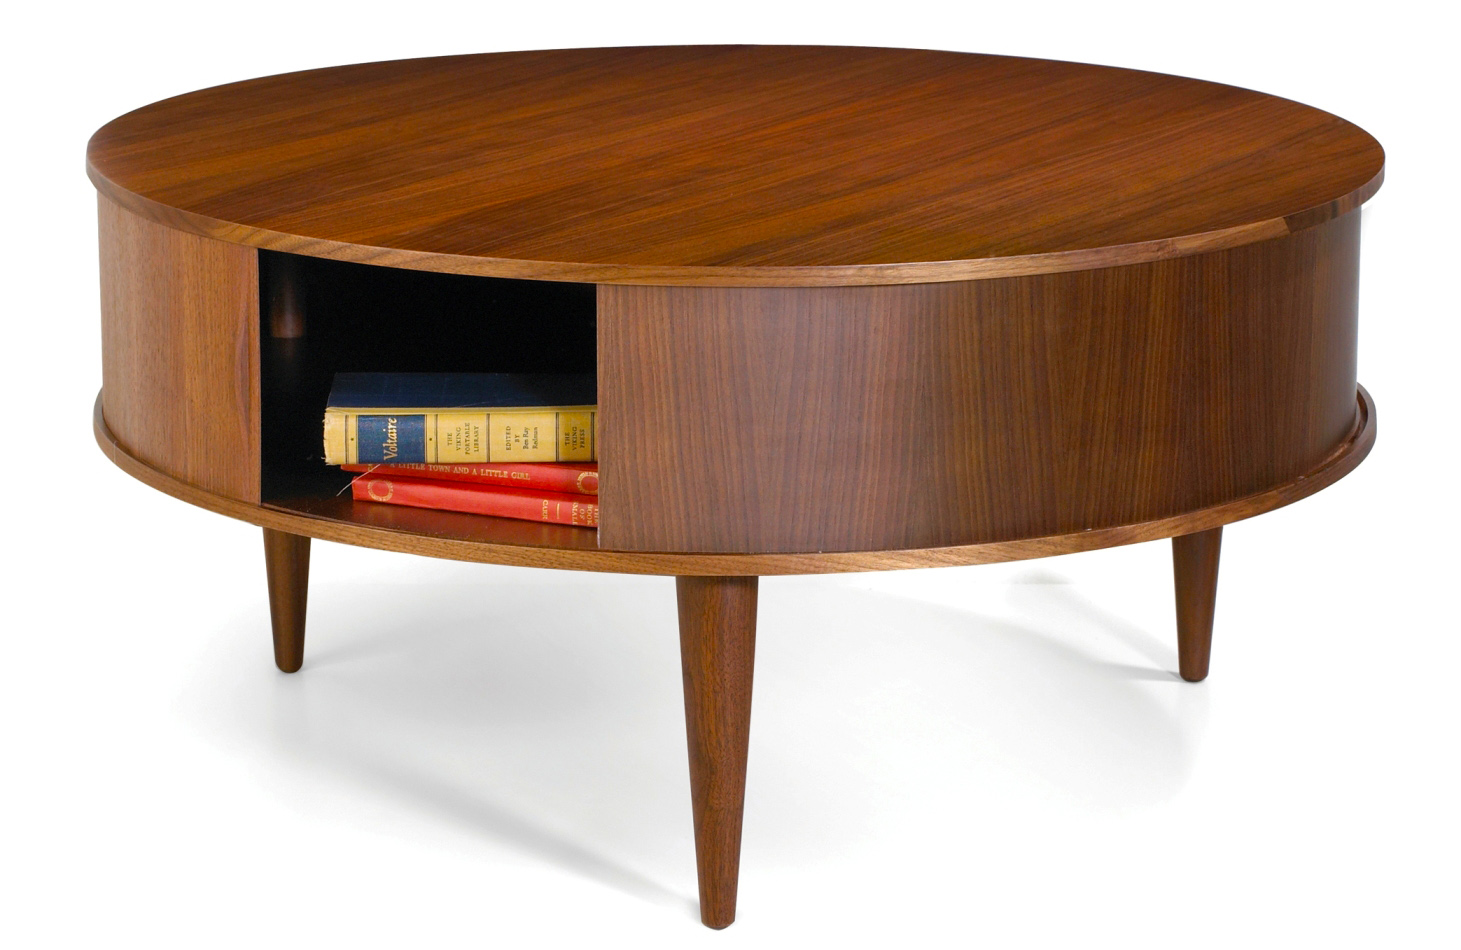 Best guide and tips for buy coffee table like buy round coffee table for coffee cocktail table for homeowner in coffee table furniture store